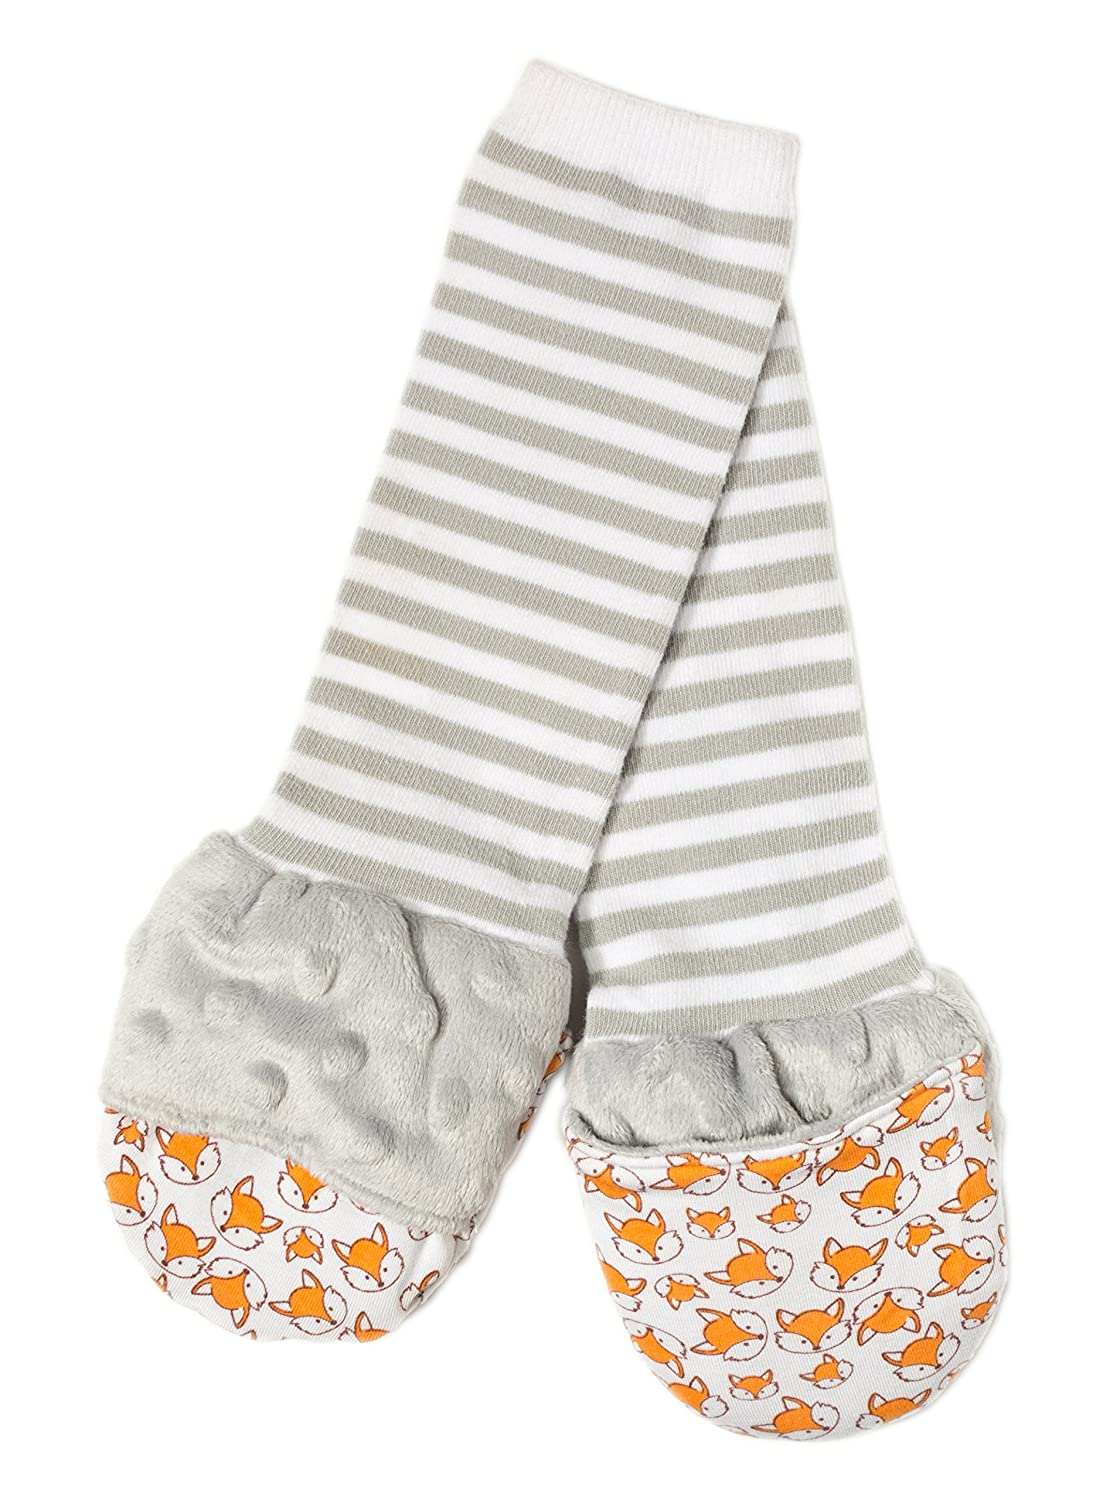 Handsocks Plushy Stay On Strap-Free No-Scratch & Warmth Baby & Kid Mittens (Large (Toddler 18+mo), Elodie (Grey Chevron))